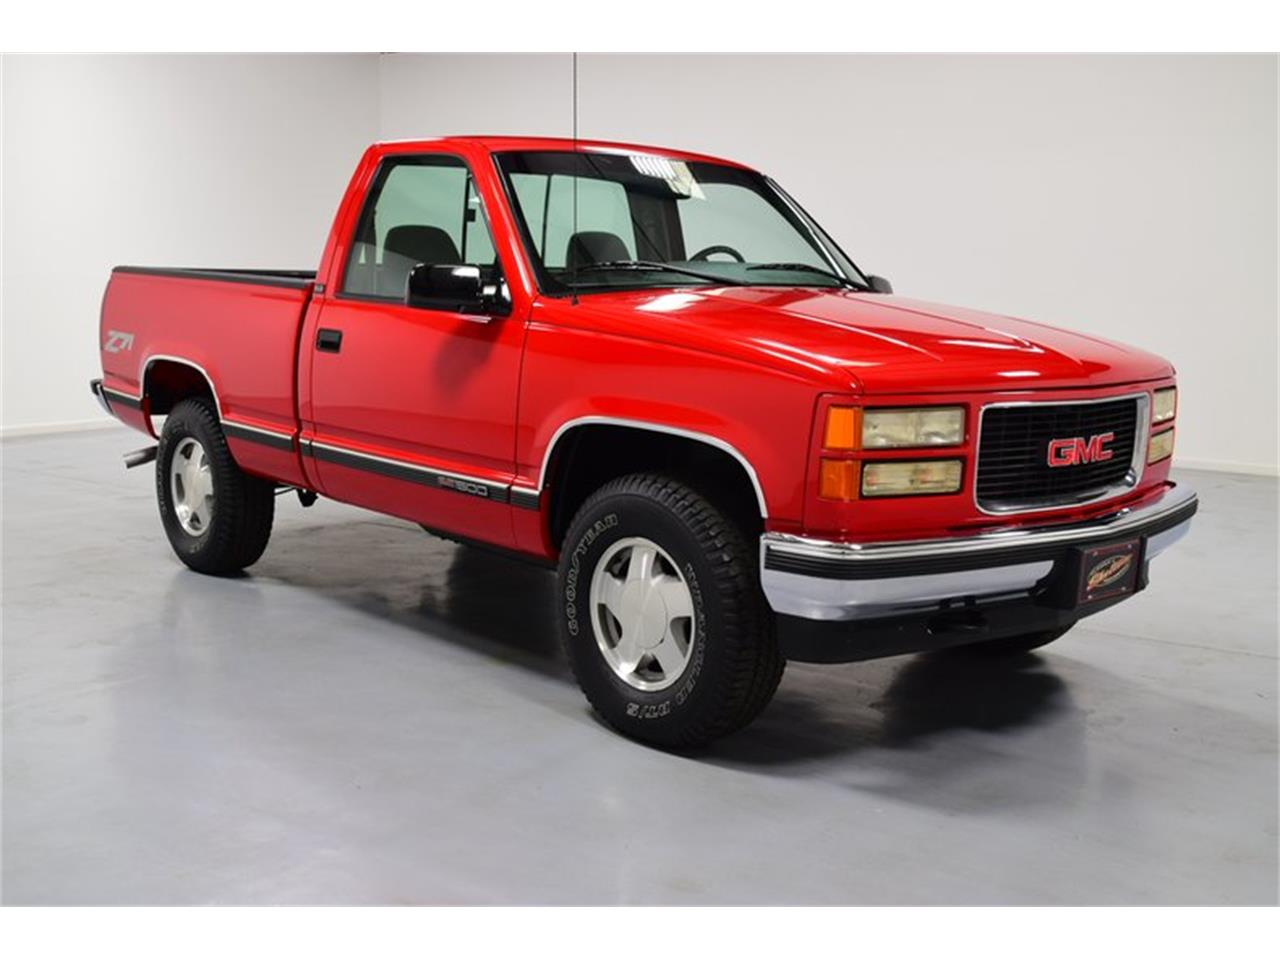 Stupendous 1996 Gmc Sierra For Sale In Mooresville Nc Classiccarsbay Com Gmtry Best Dining Table And Chair Ideas Images Gmtryco